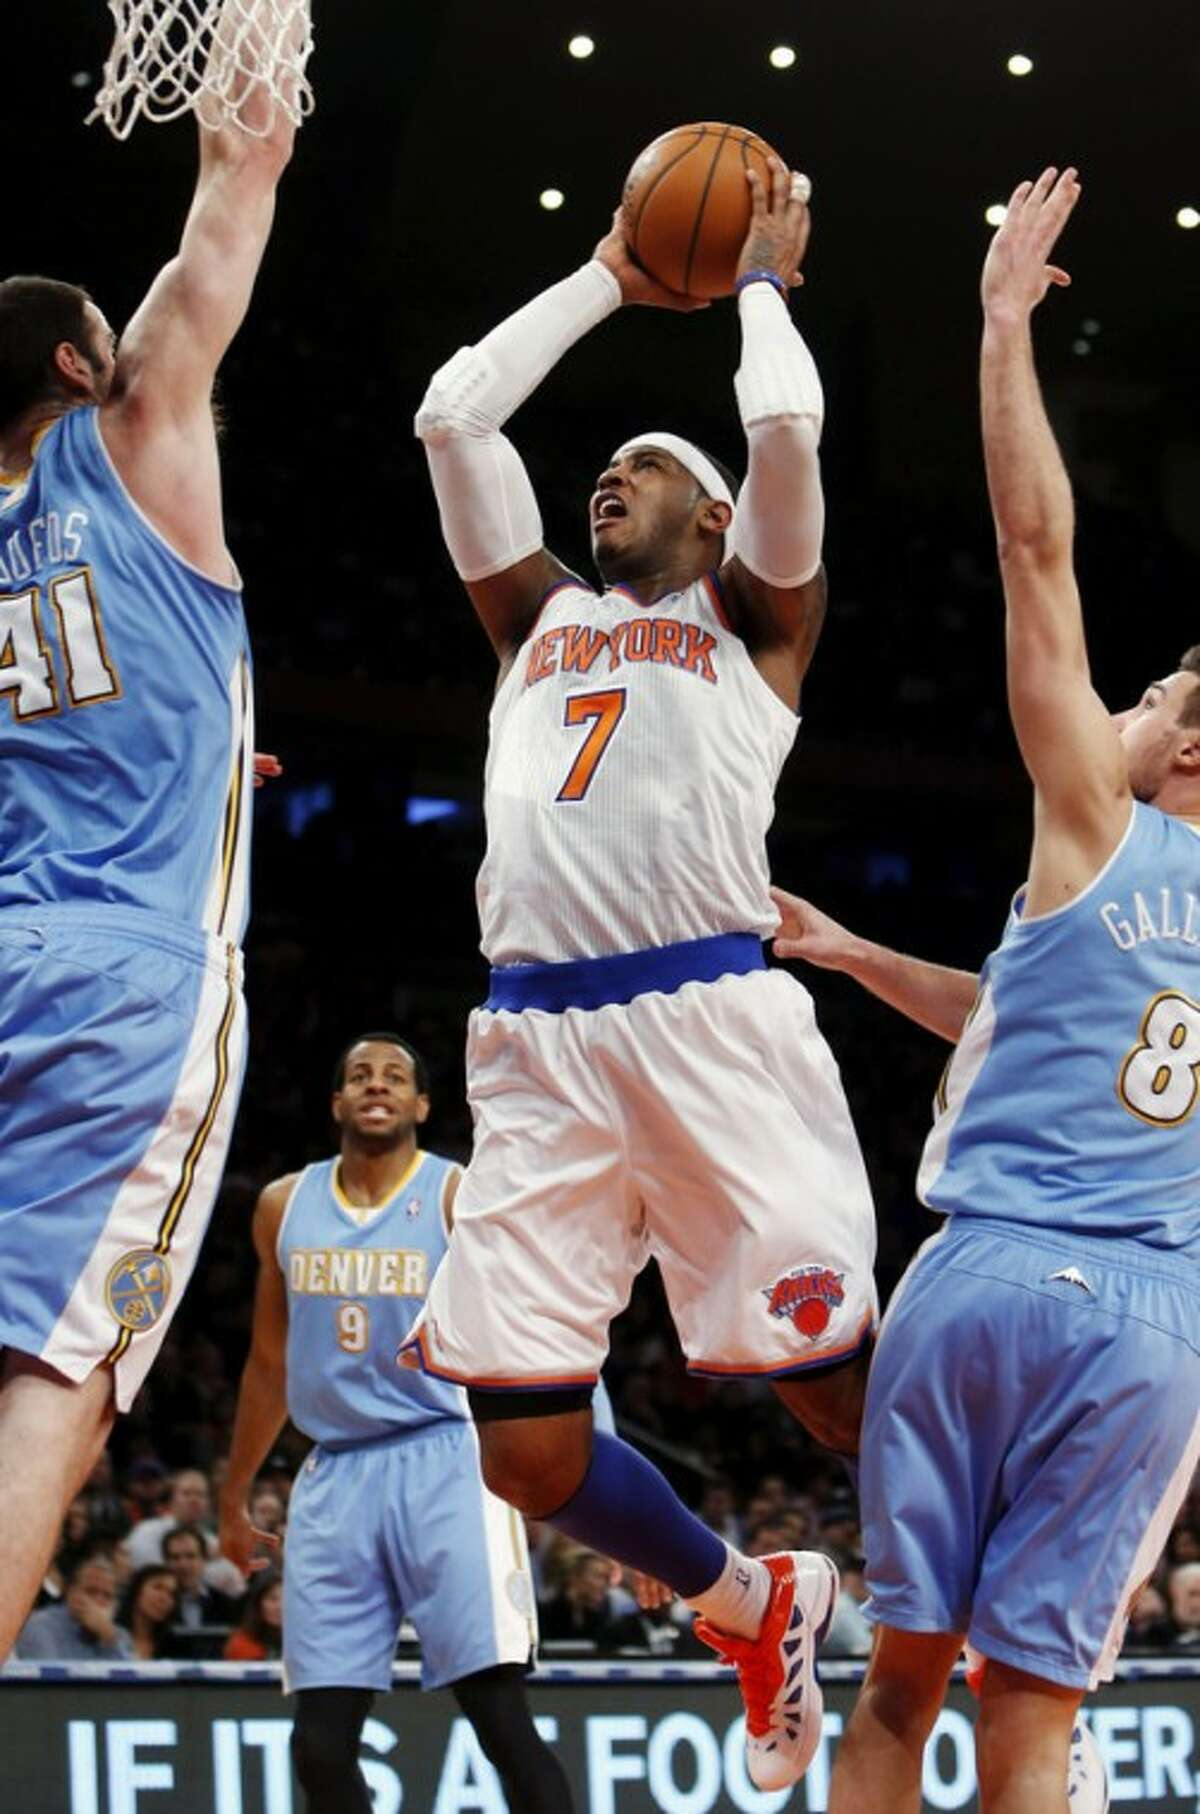 New York Knicks' Carmelo Anthony (7) shoots against Denver Nuggets' Kosta Koufus (41) and Danilo Gallinari (8) during the first half of an NBA basketball game, Sunday, Dec. 9, 2012, in New York. (AP Photo/Jason DeCrow)